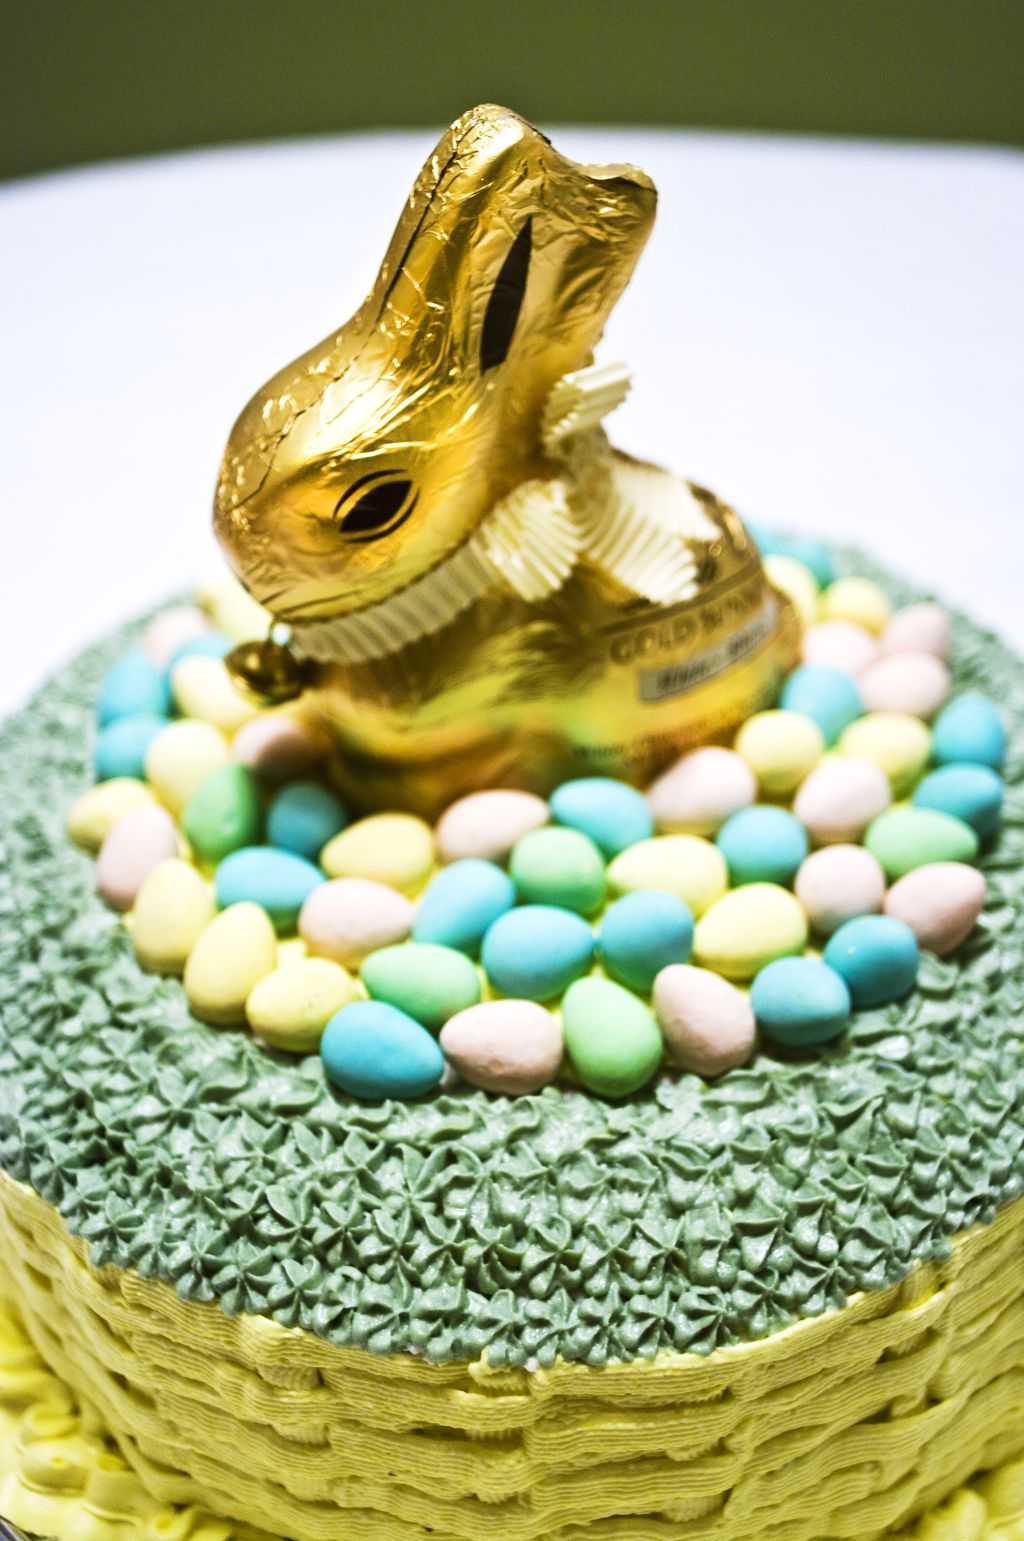 I Trapped The Easter Bunny And Mounted Him On A Cake Right In